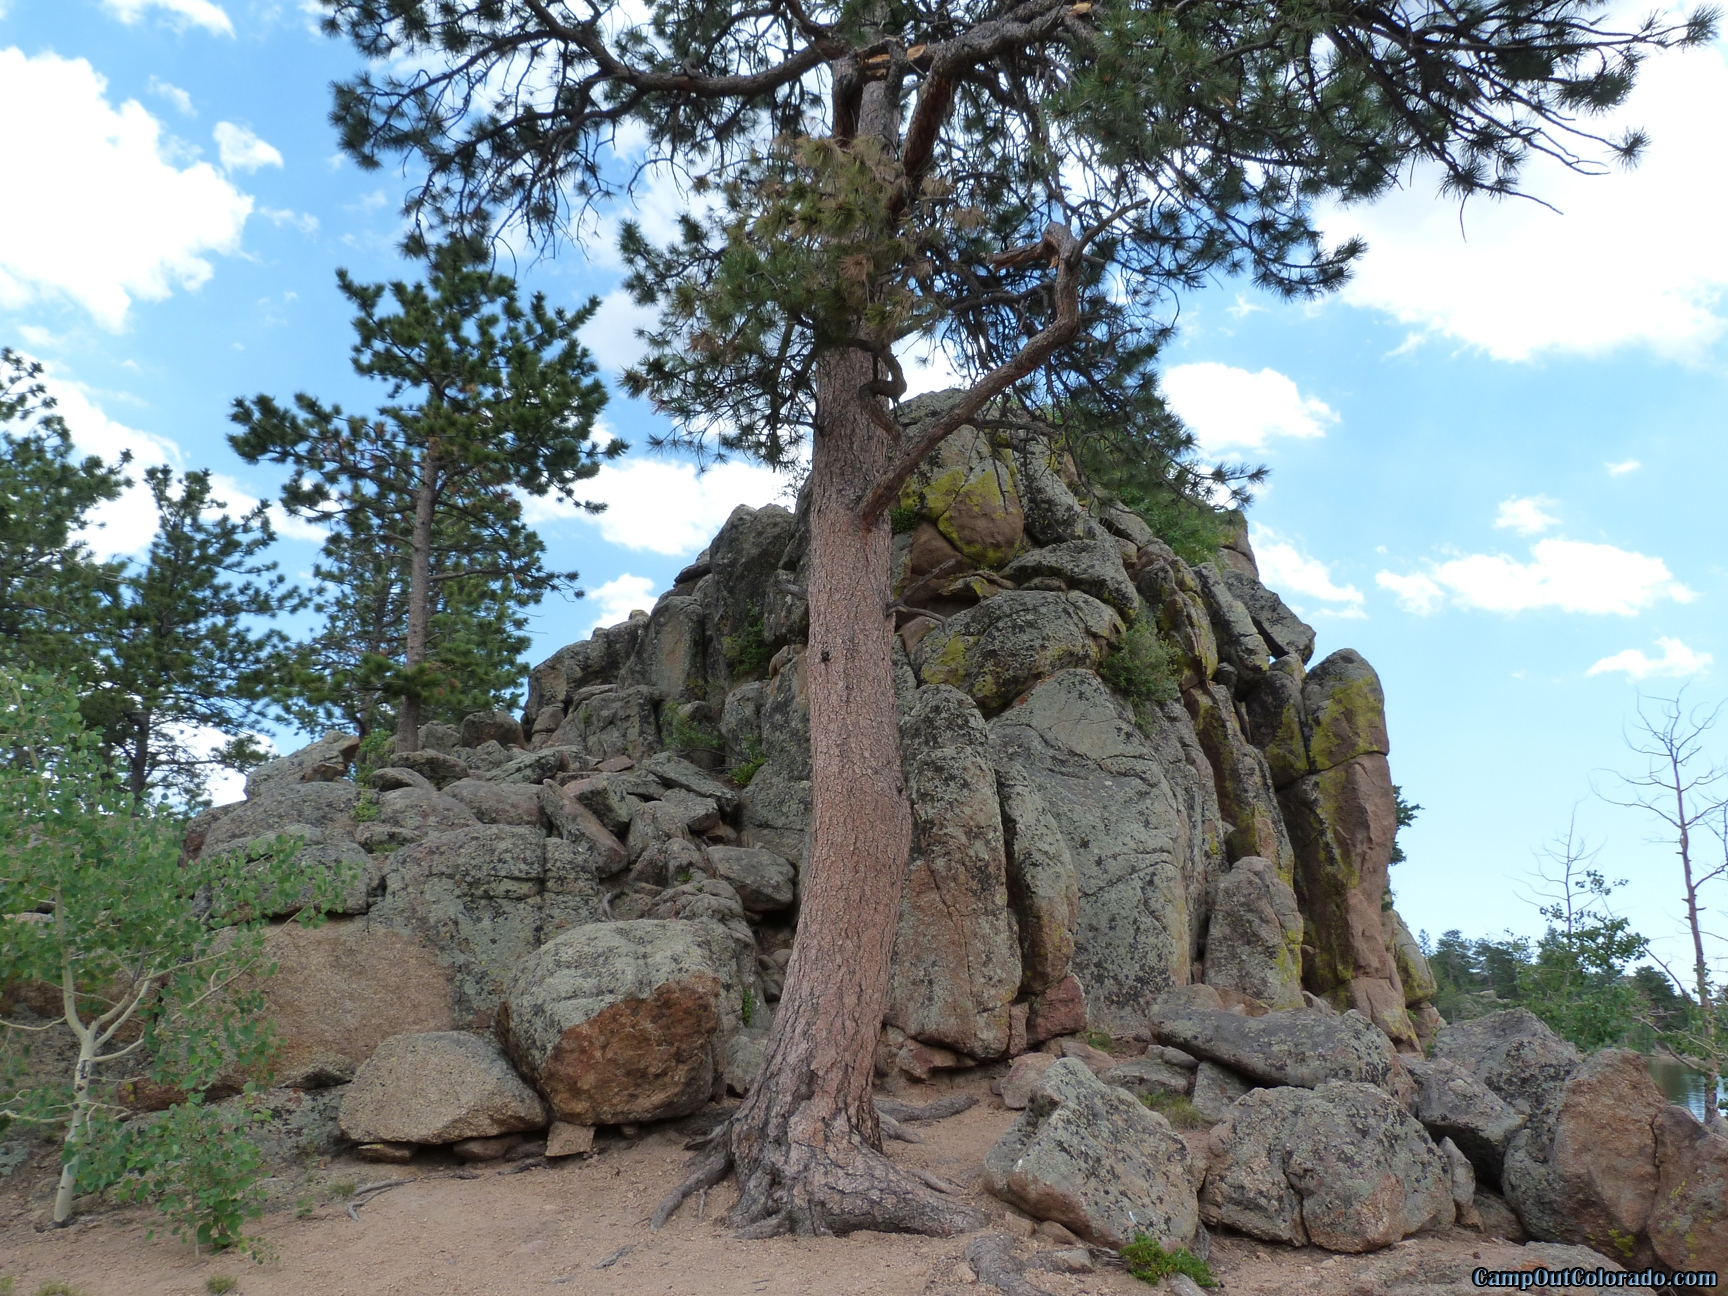 camp-out-colorado-bellaire-lake-good-climbing-rocks